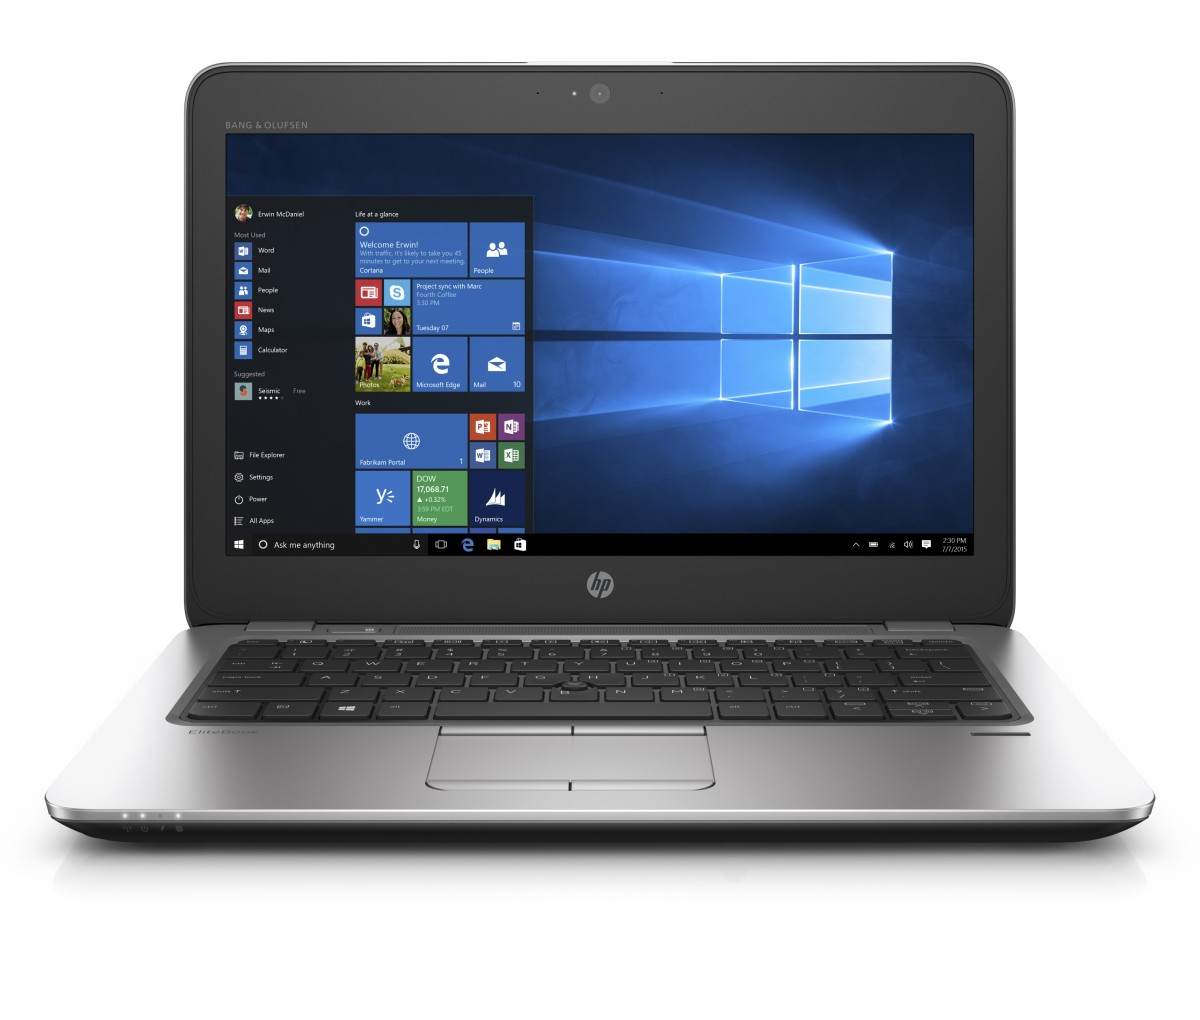 HP EliteBook 725 G4 A12-9800B 12.5 FHD UWVA CAM, 8GB, 256GB TurboG2, ac, BT, FpR, backlit kbd, Win10Pro